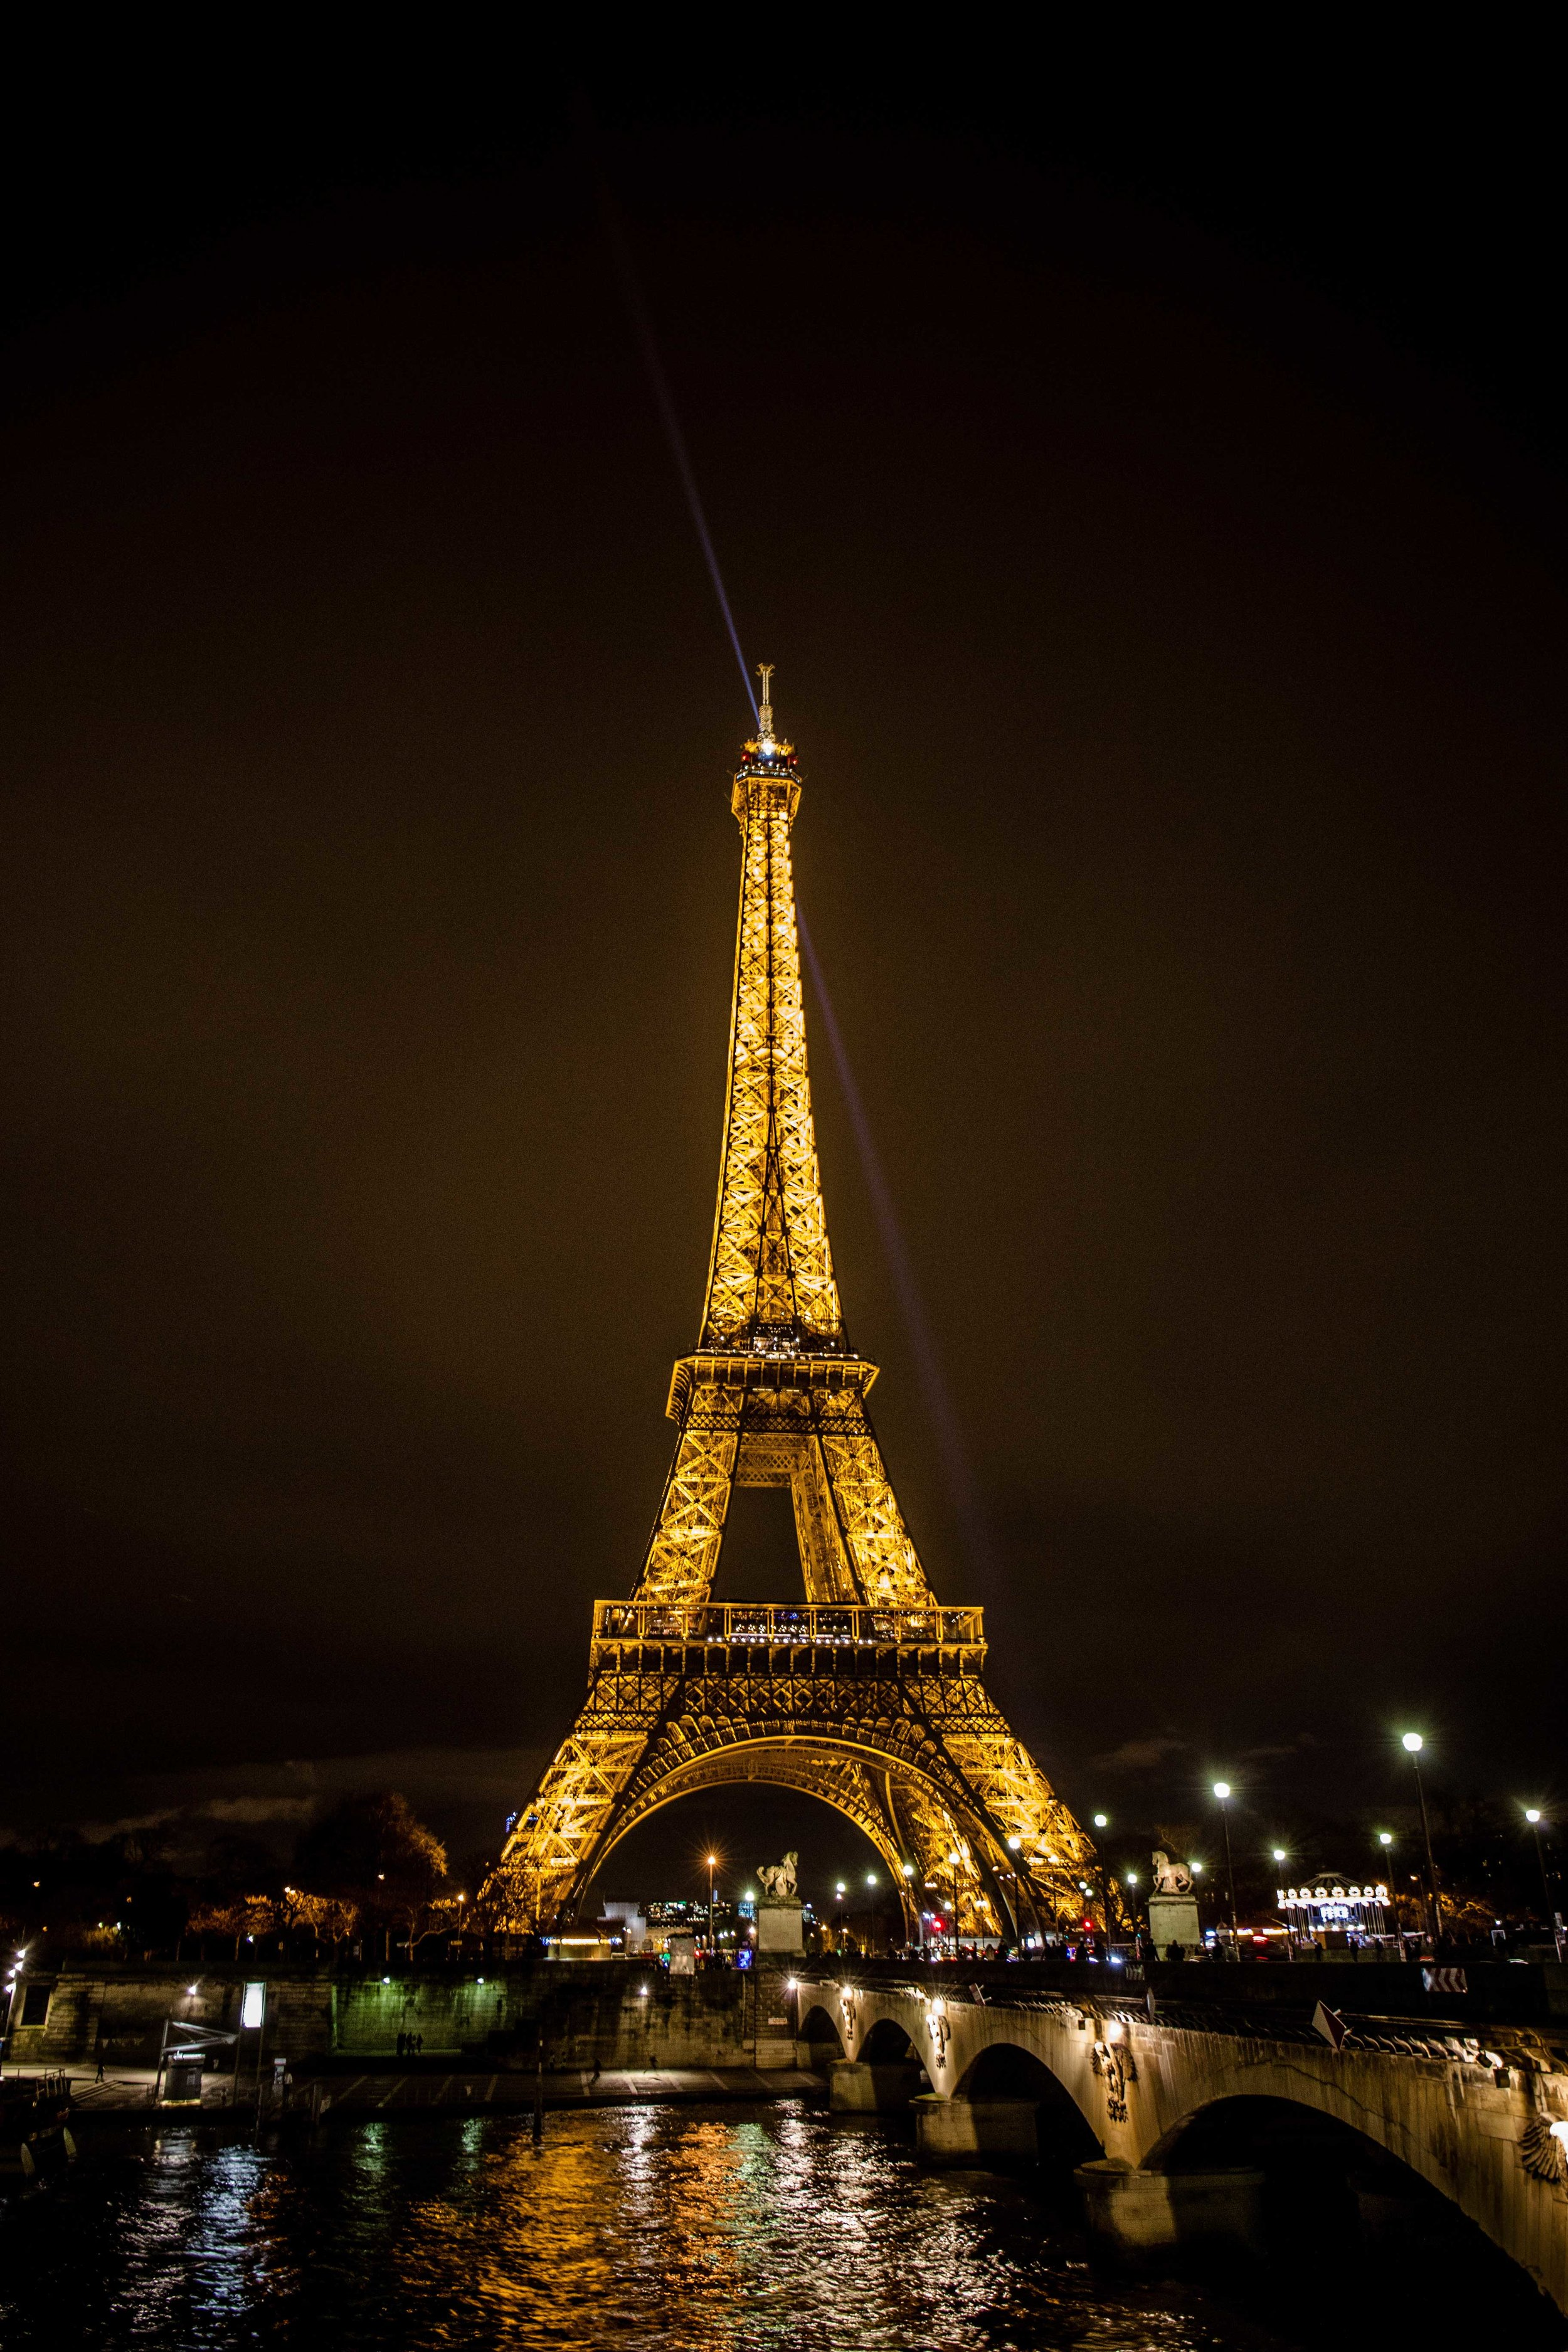 There is something magical about the Eiffel Tower at night.  We enjoyed wandering around after a relaxing dinner cruise along the Seine.